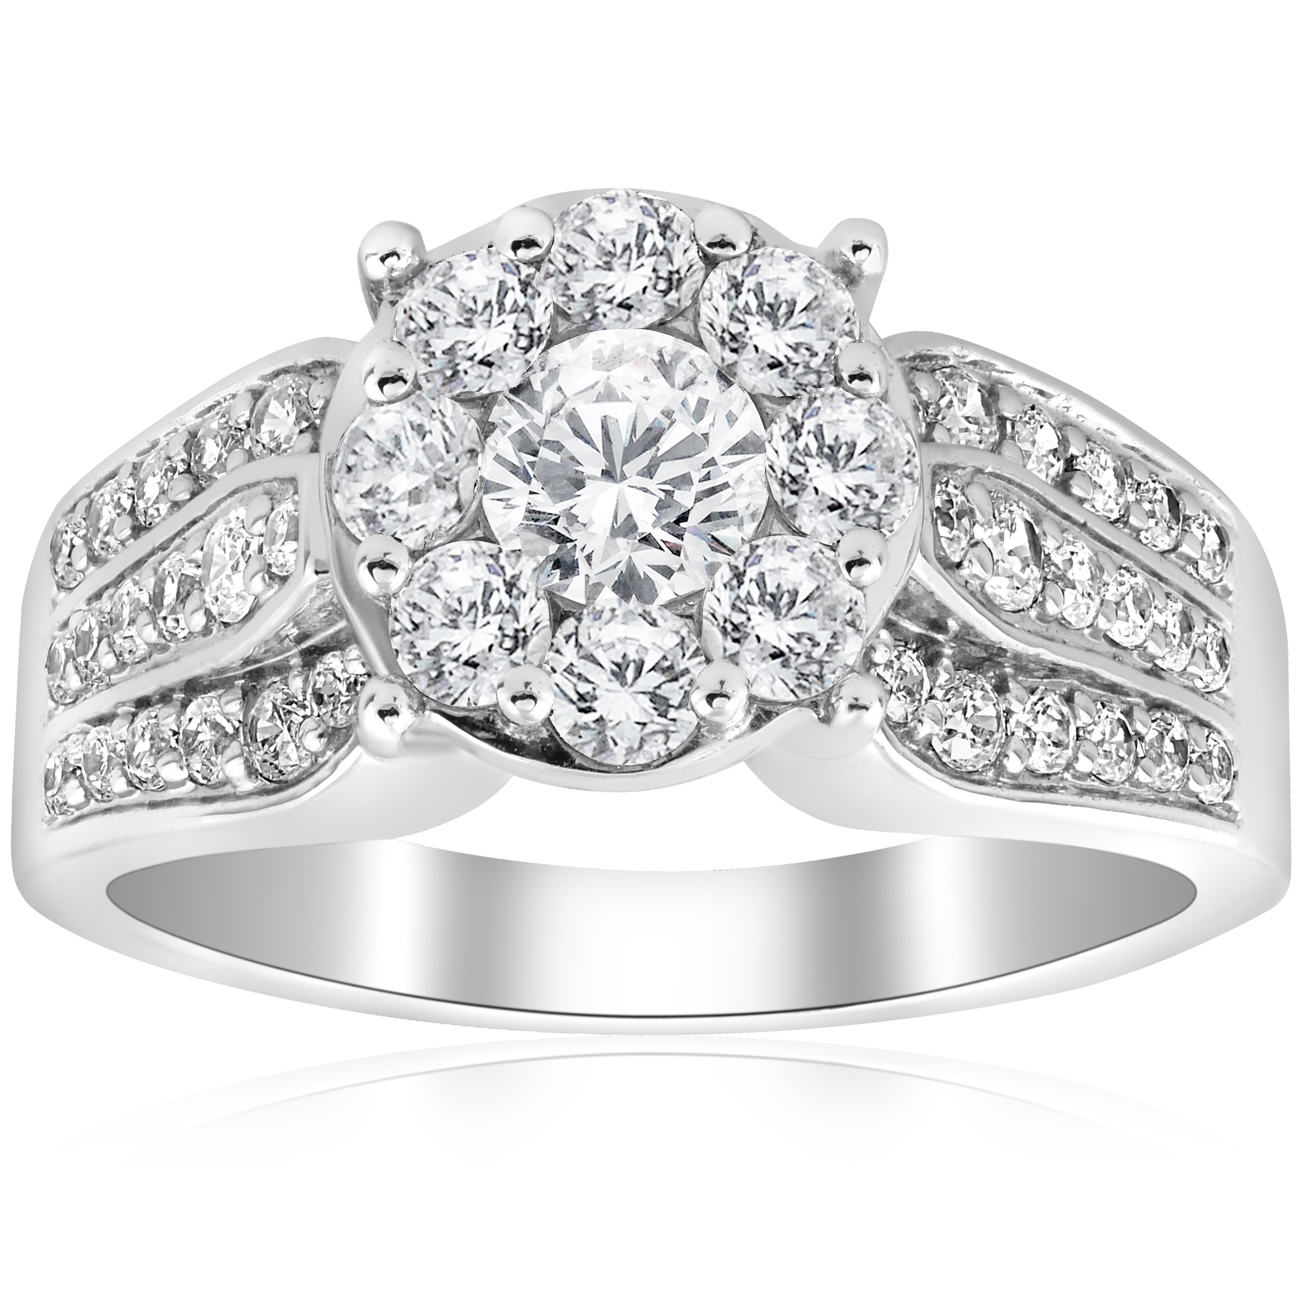 1 1 2ct Diamond Halo Engagement Ring Wide 3-Row Band 10K White Gold Solitaire by Pompeii3